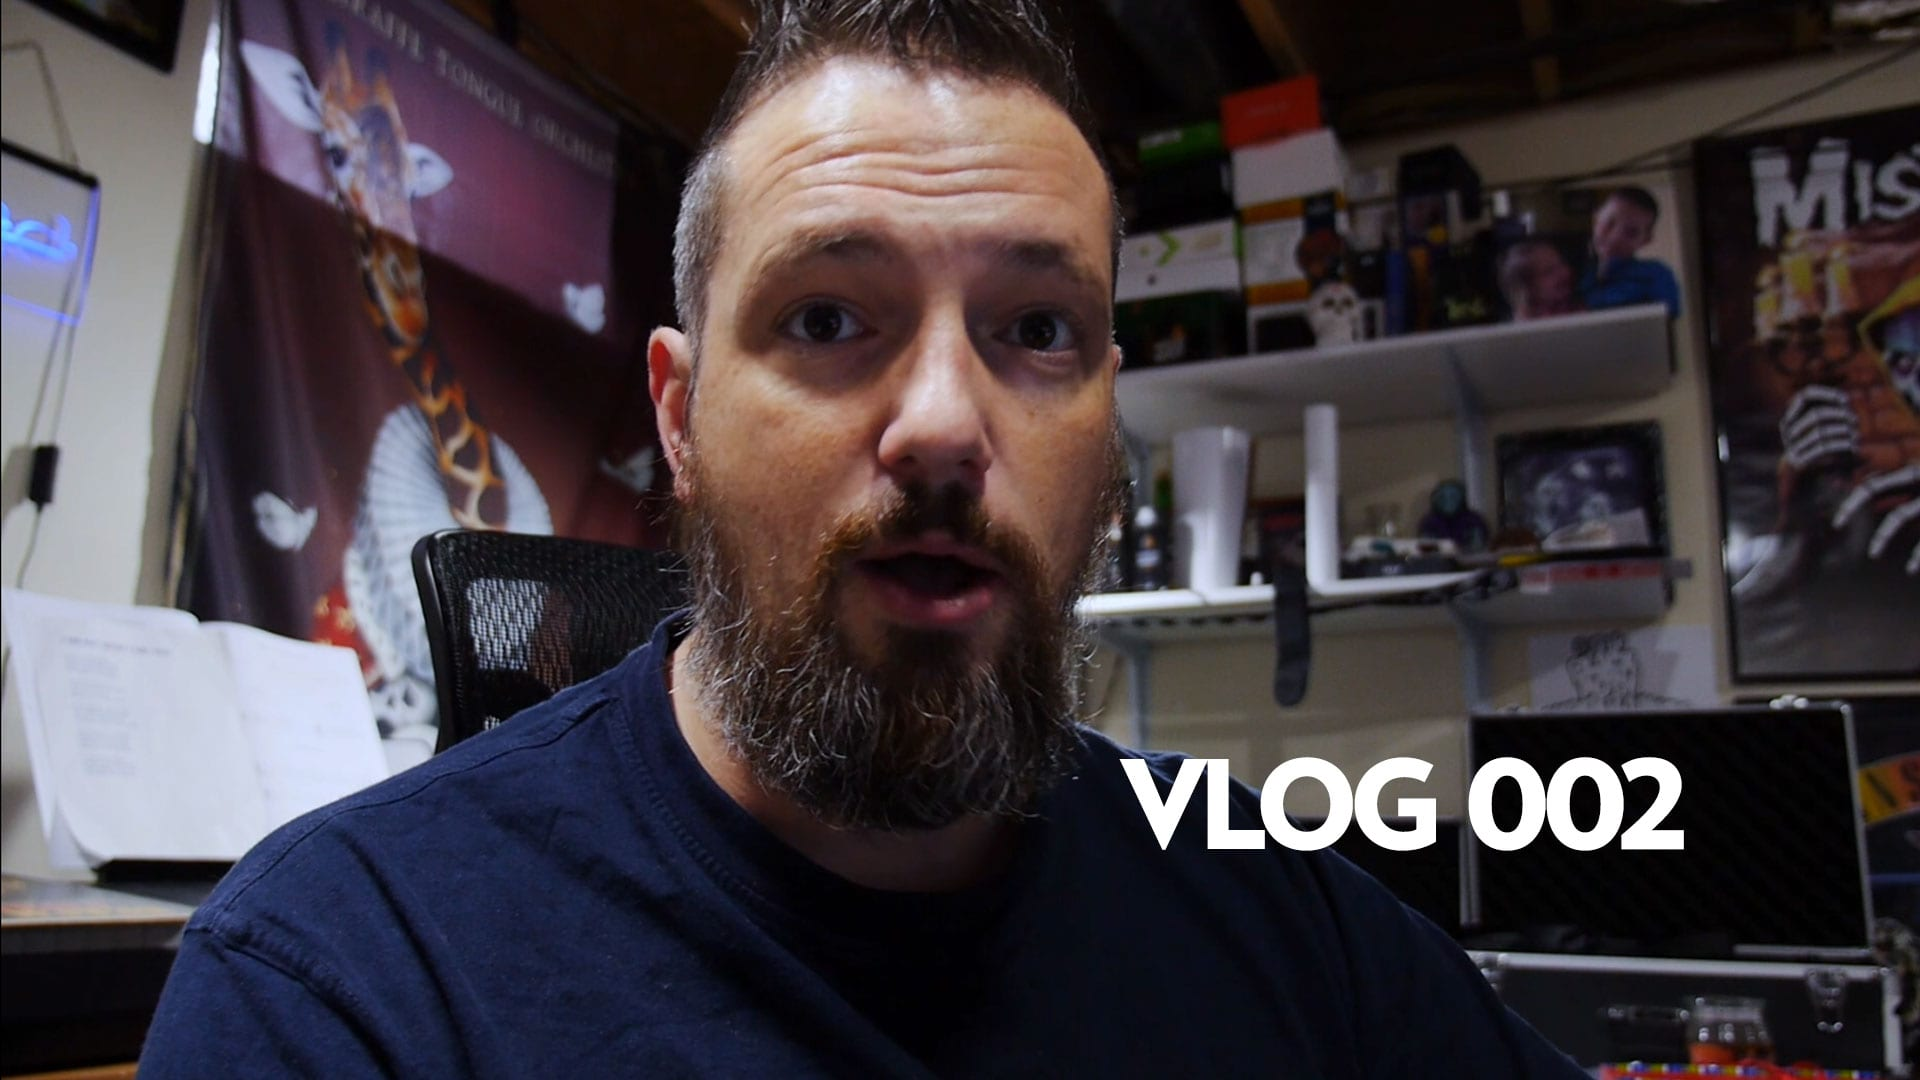 Vlog 002: More Stuff